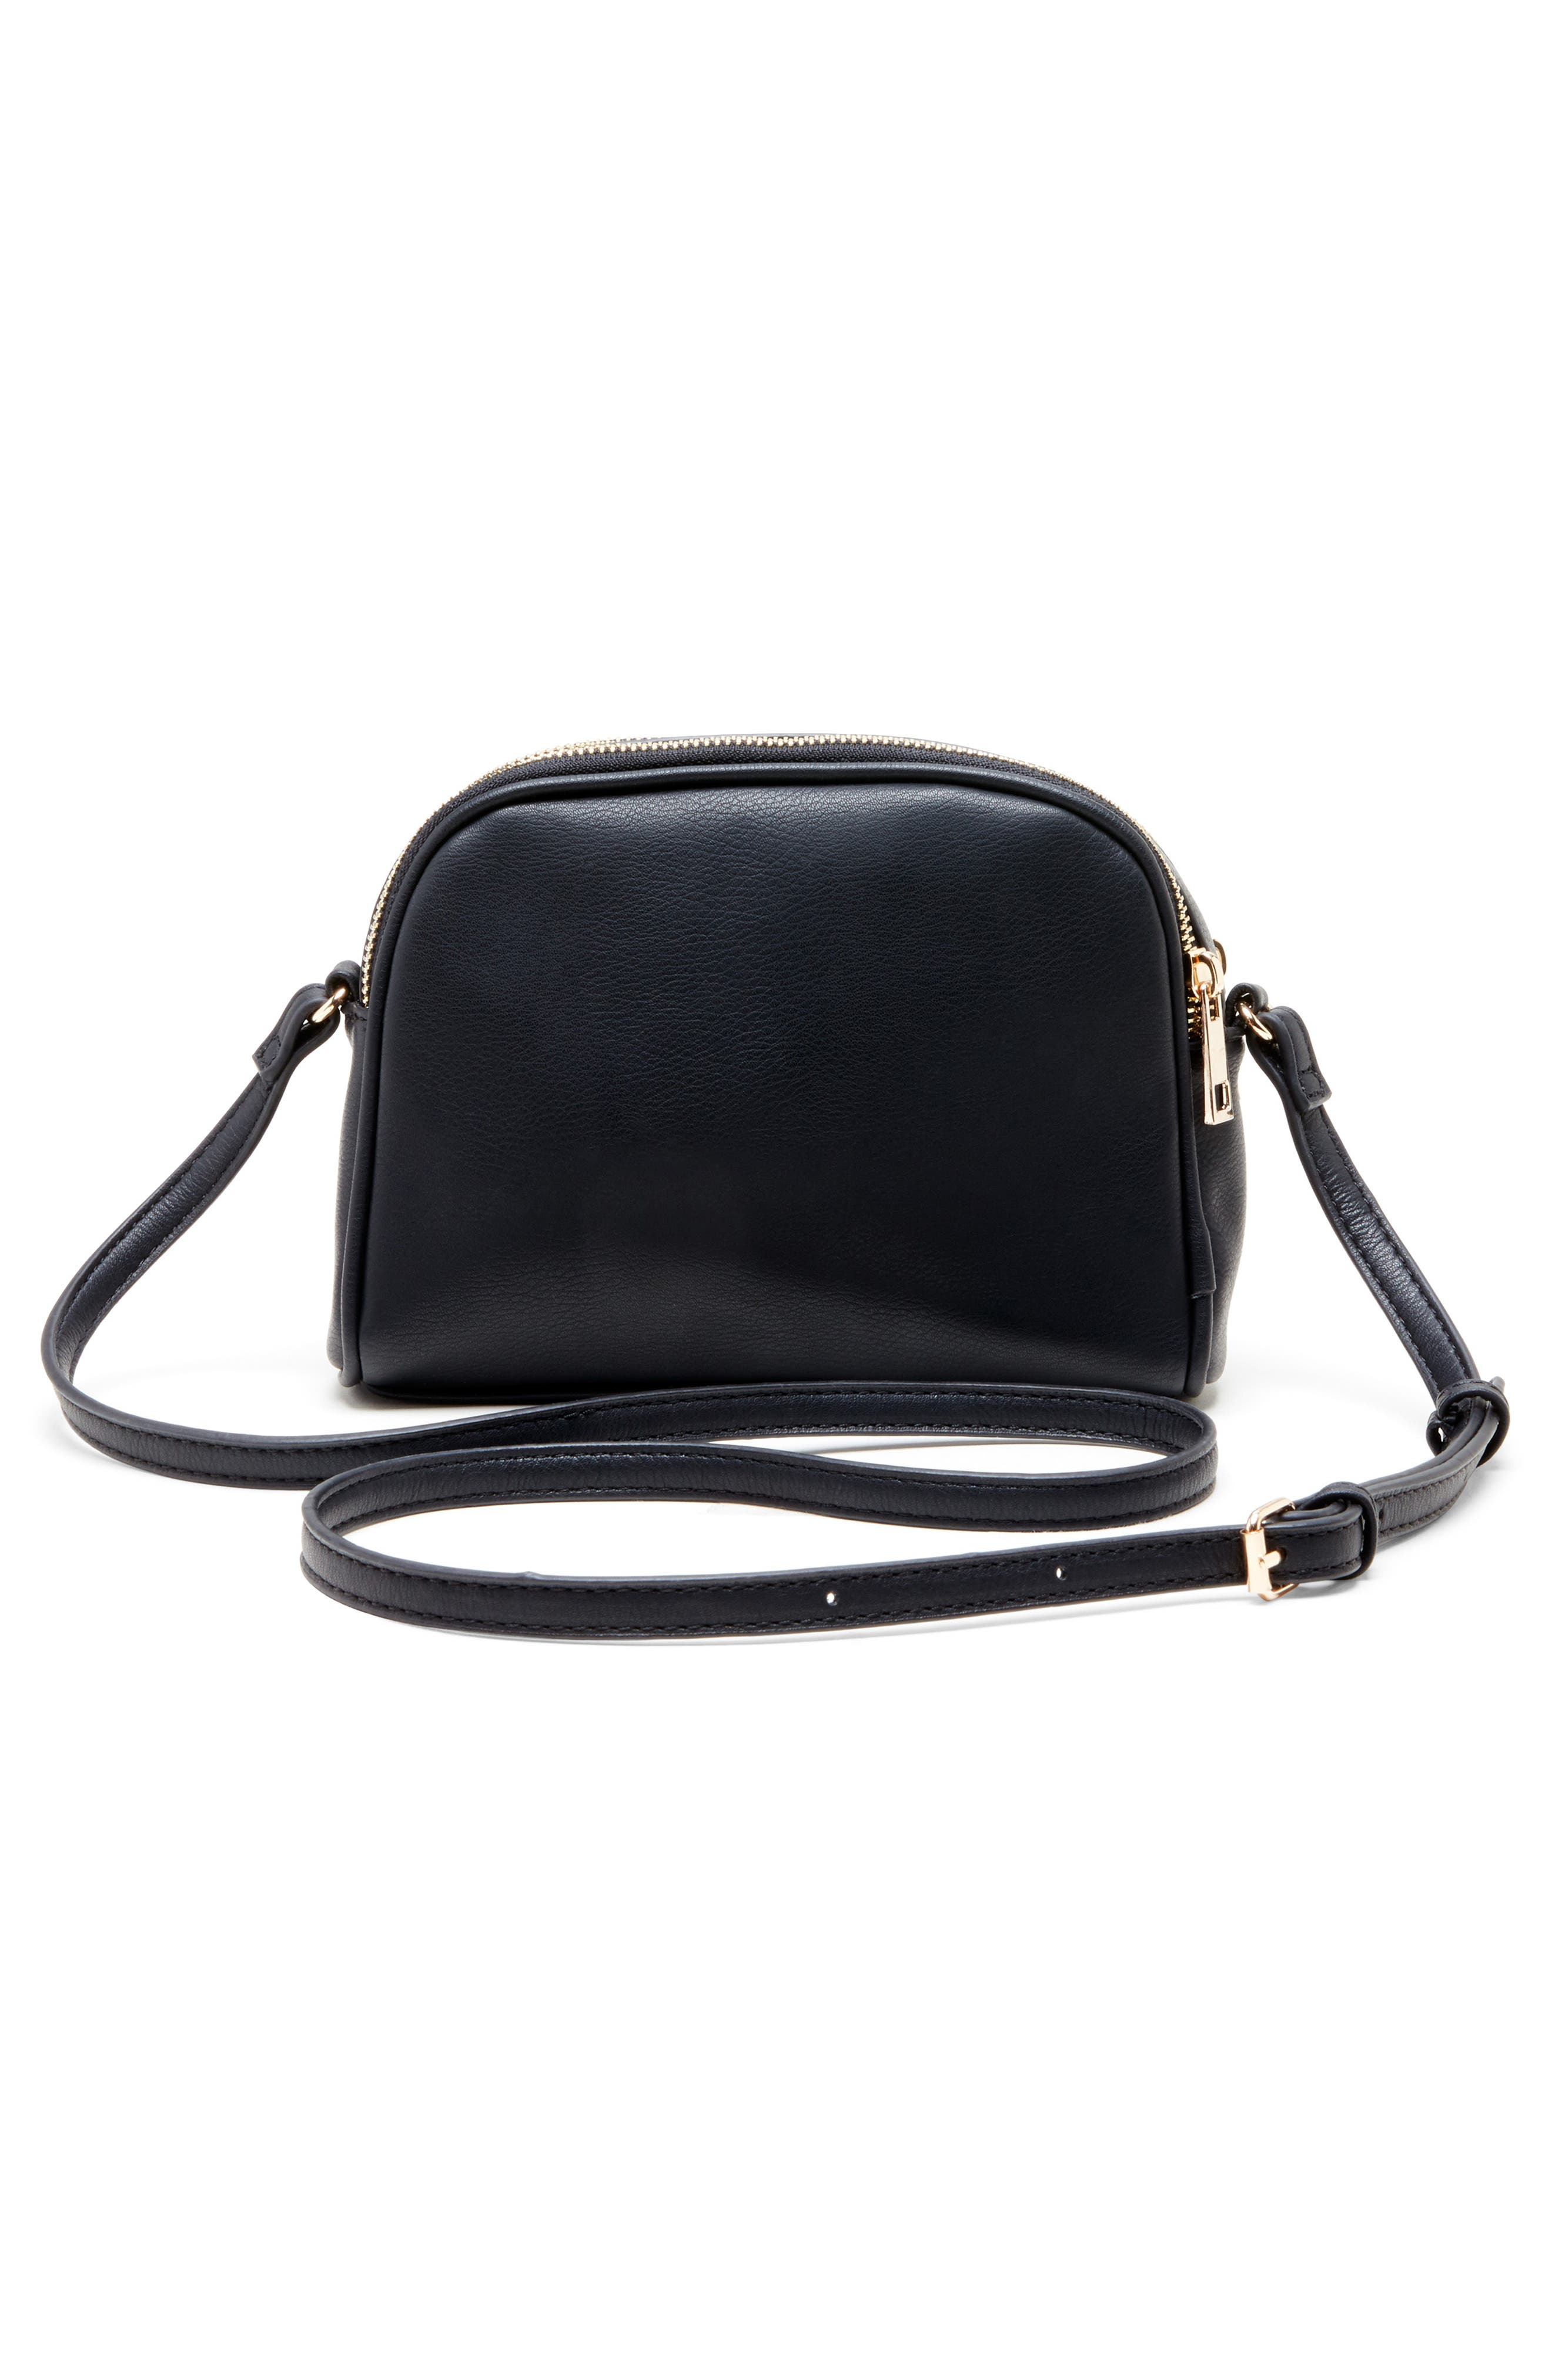 SOLE SOCIETY, Linza Faux Leather Crossbody Bag, Alternate thumbnail 2, color, BLACK/ CREAM